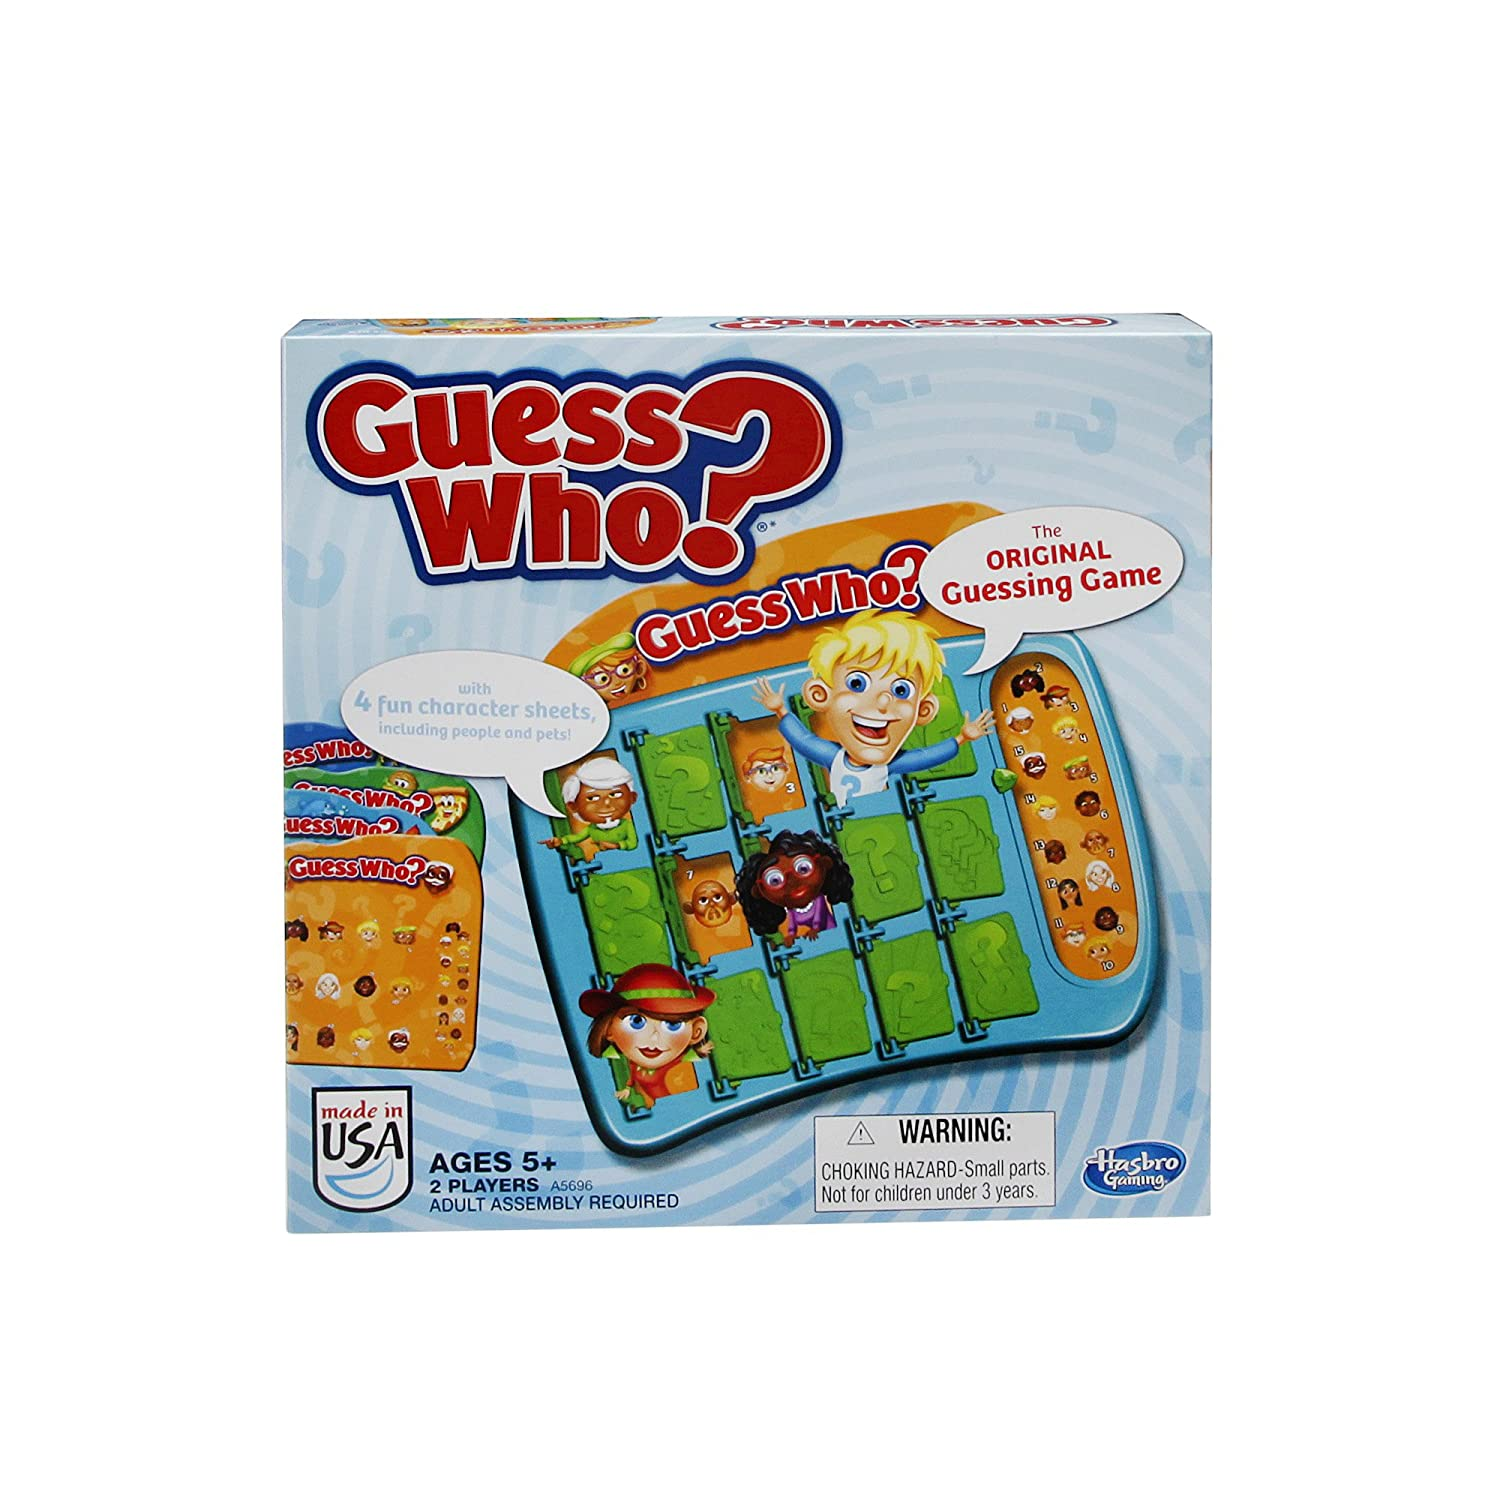 Who Game Connect 4 Game Qwirkle Board Game Christmas Gifts